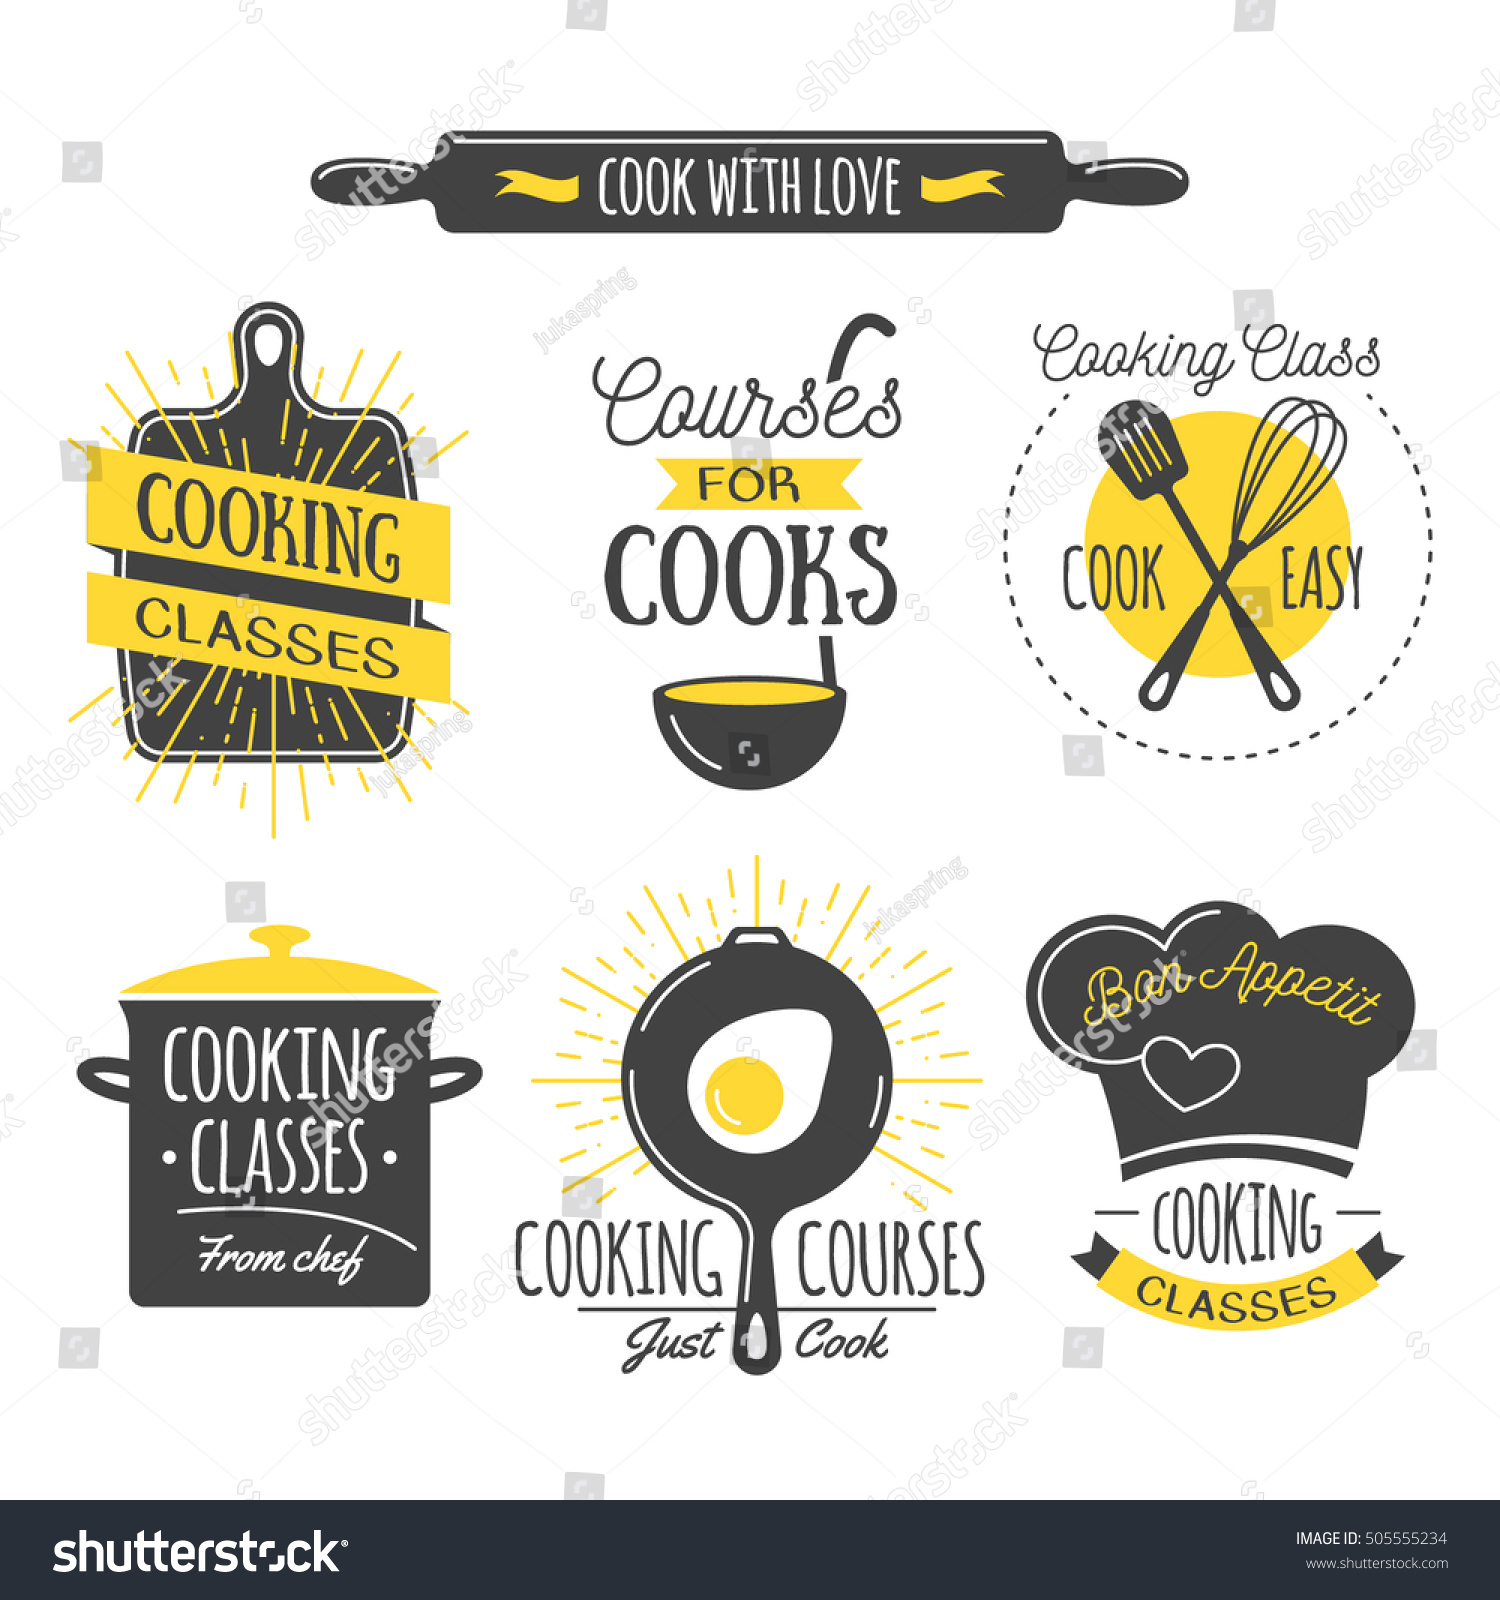 Cooking Class Vintage Design Elements Kitchen Stock Vector 505555234 Shutterstock